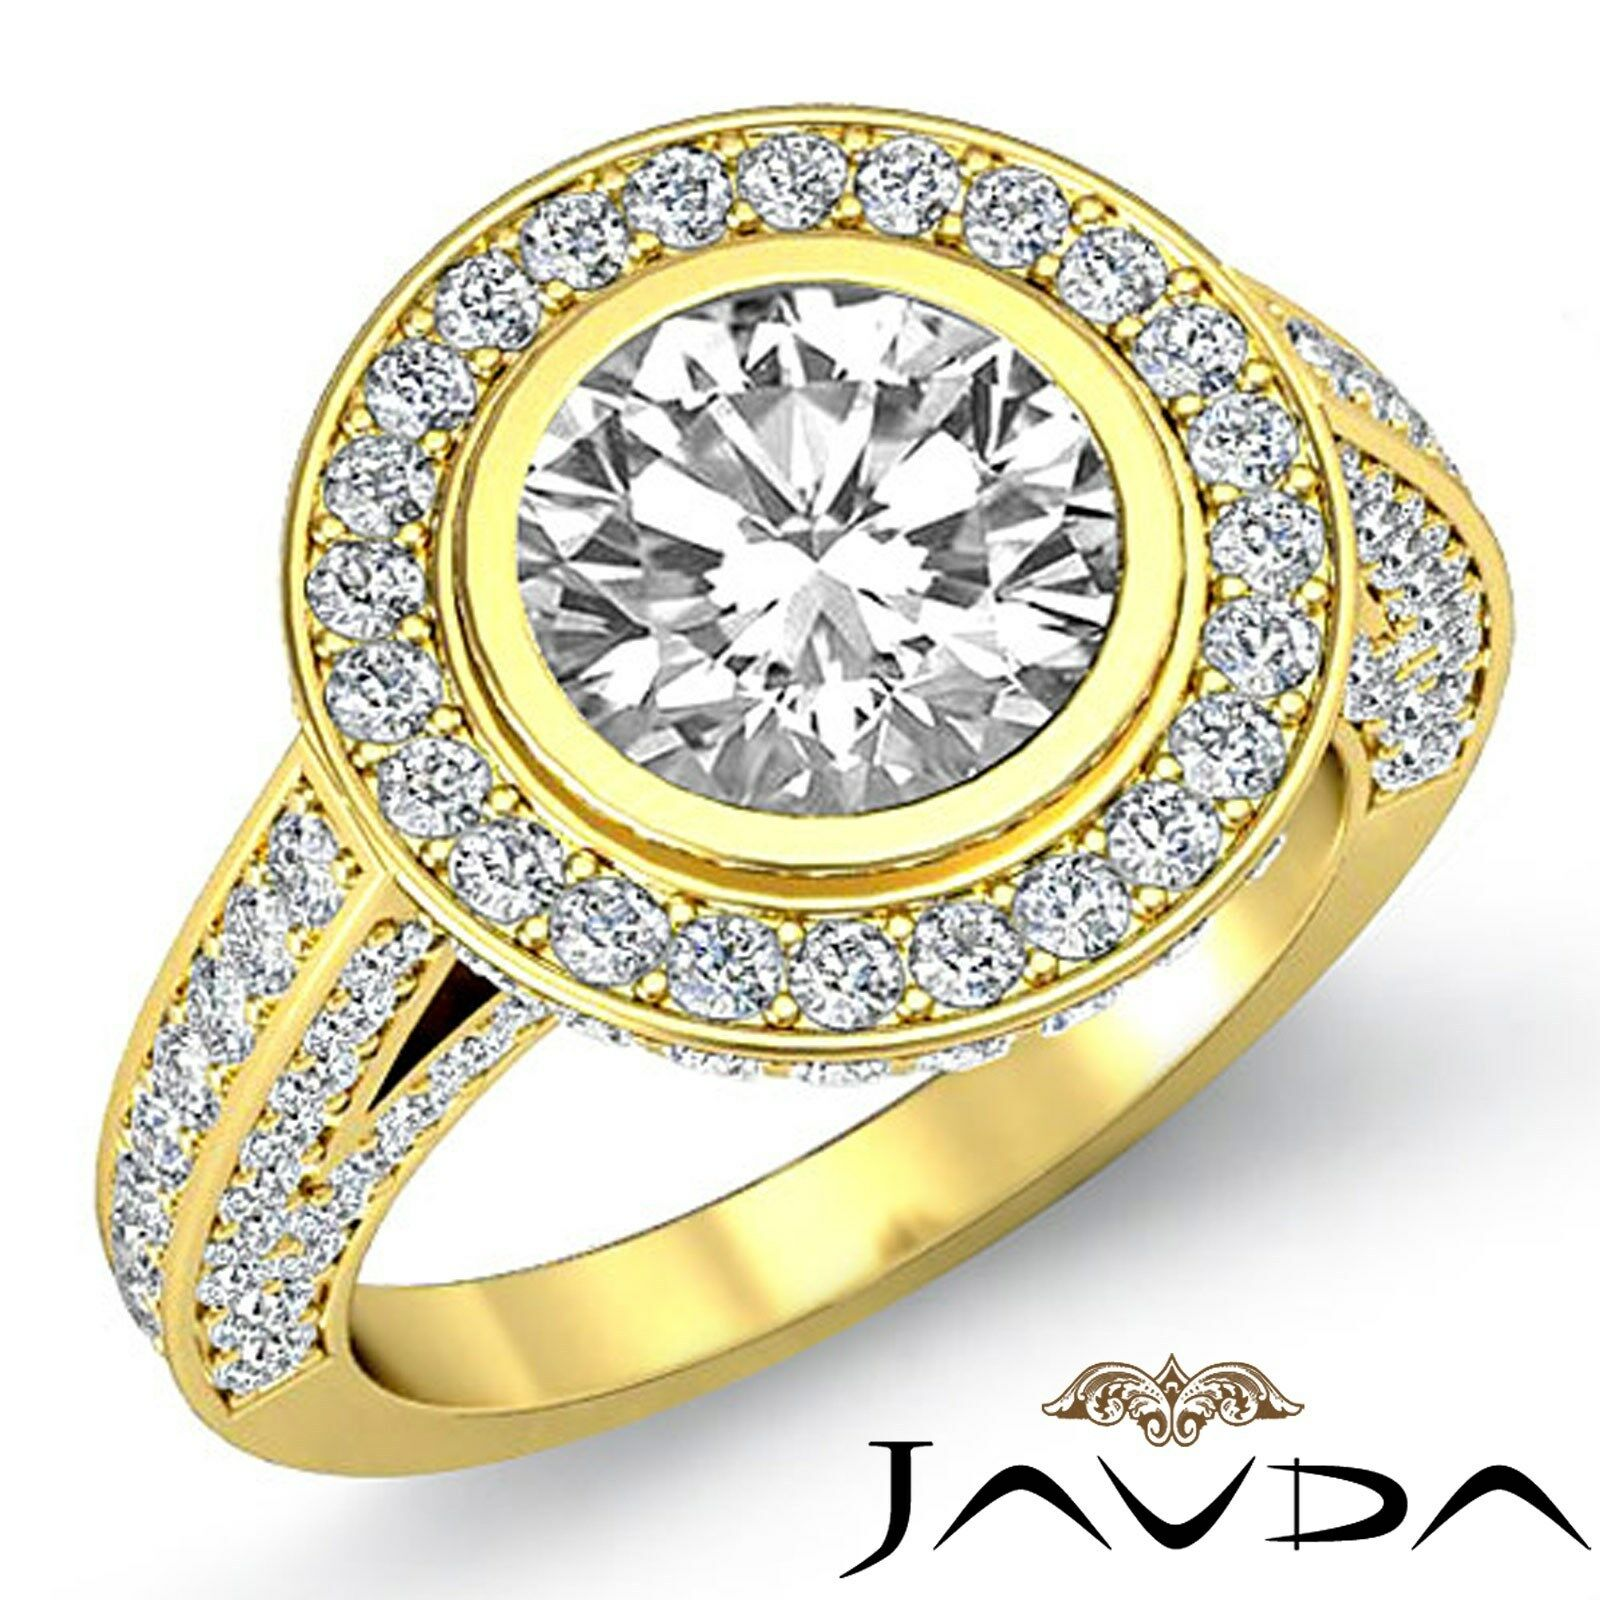 Classic Round Diamond Halo Pave Engagement Ring GIA F VS1 18k Yellow Gold 3.5ct